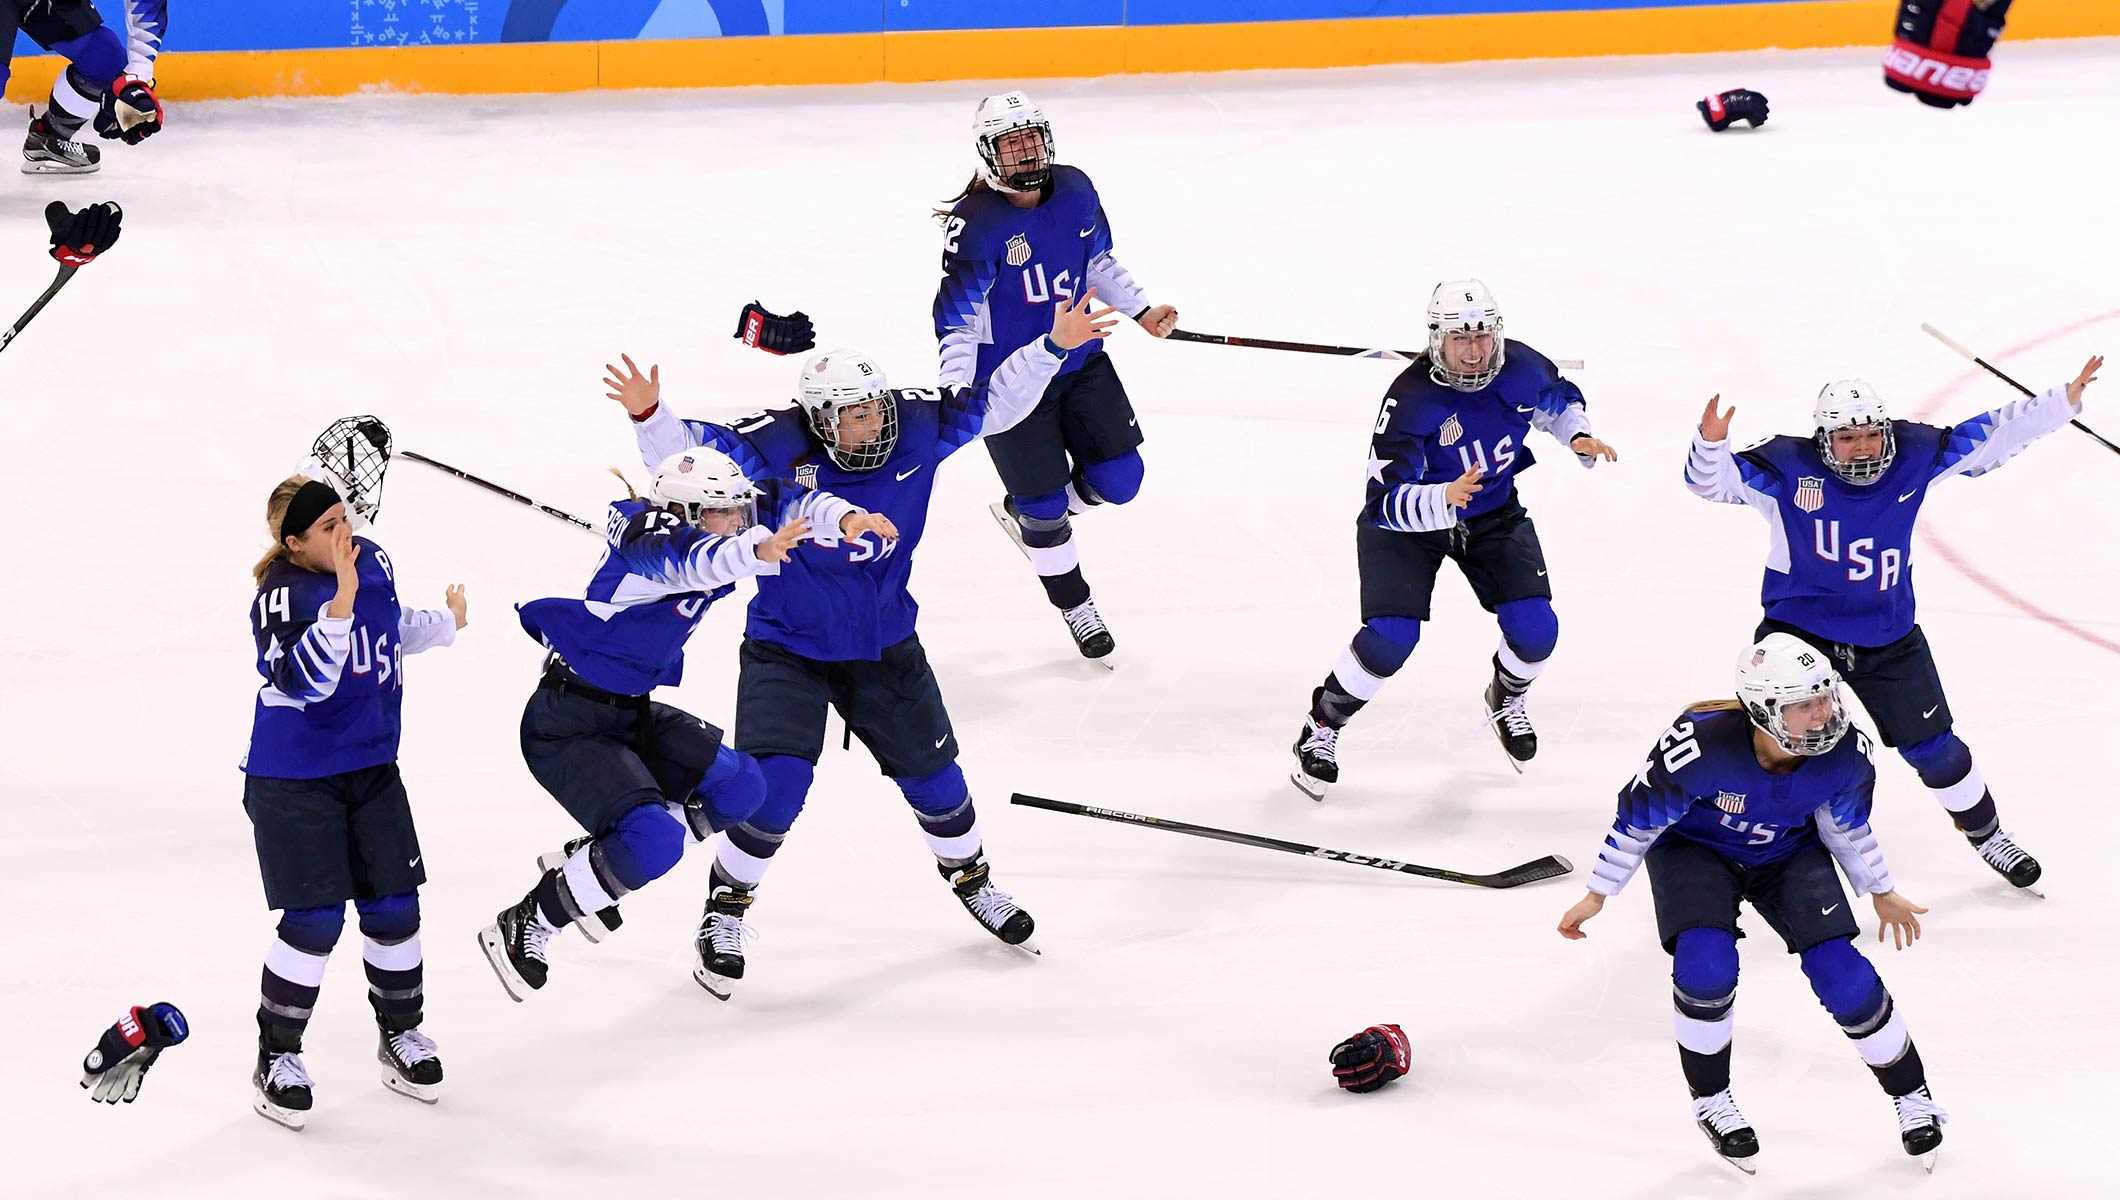 USA win shootout to claim women's ice hockey gold